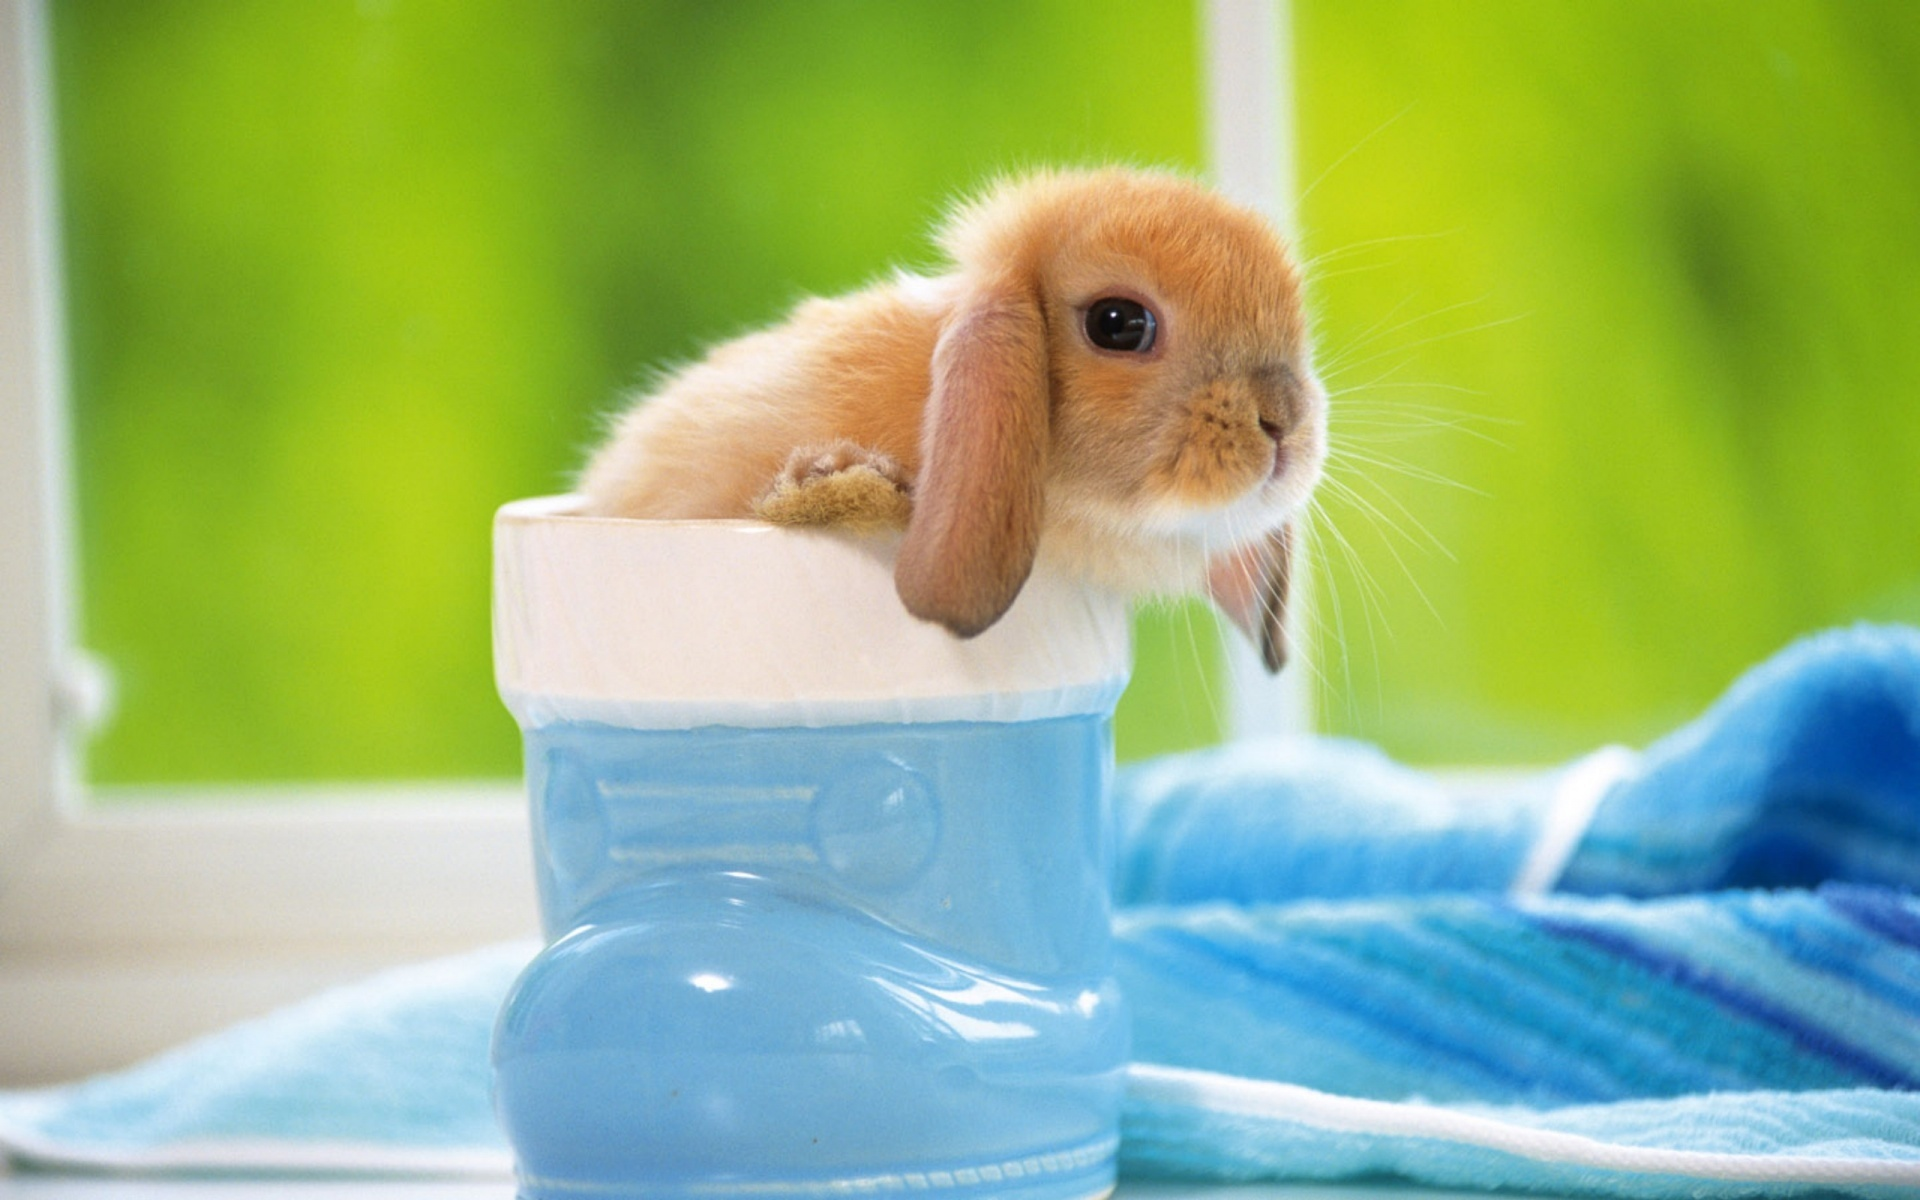 20362 download wallpaper Animals, Rabbits screensavers and pictures for free